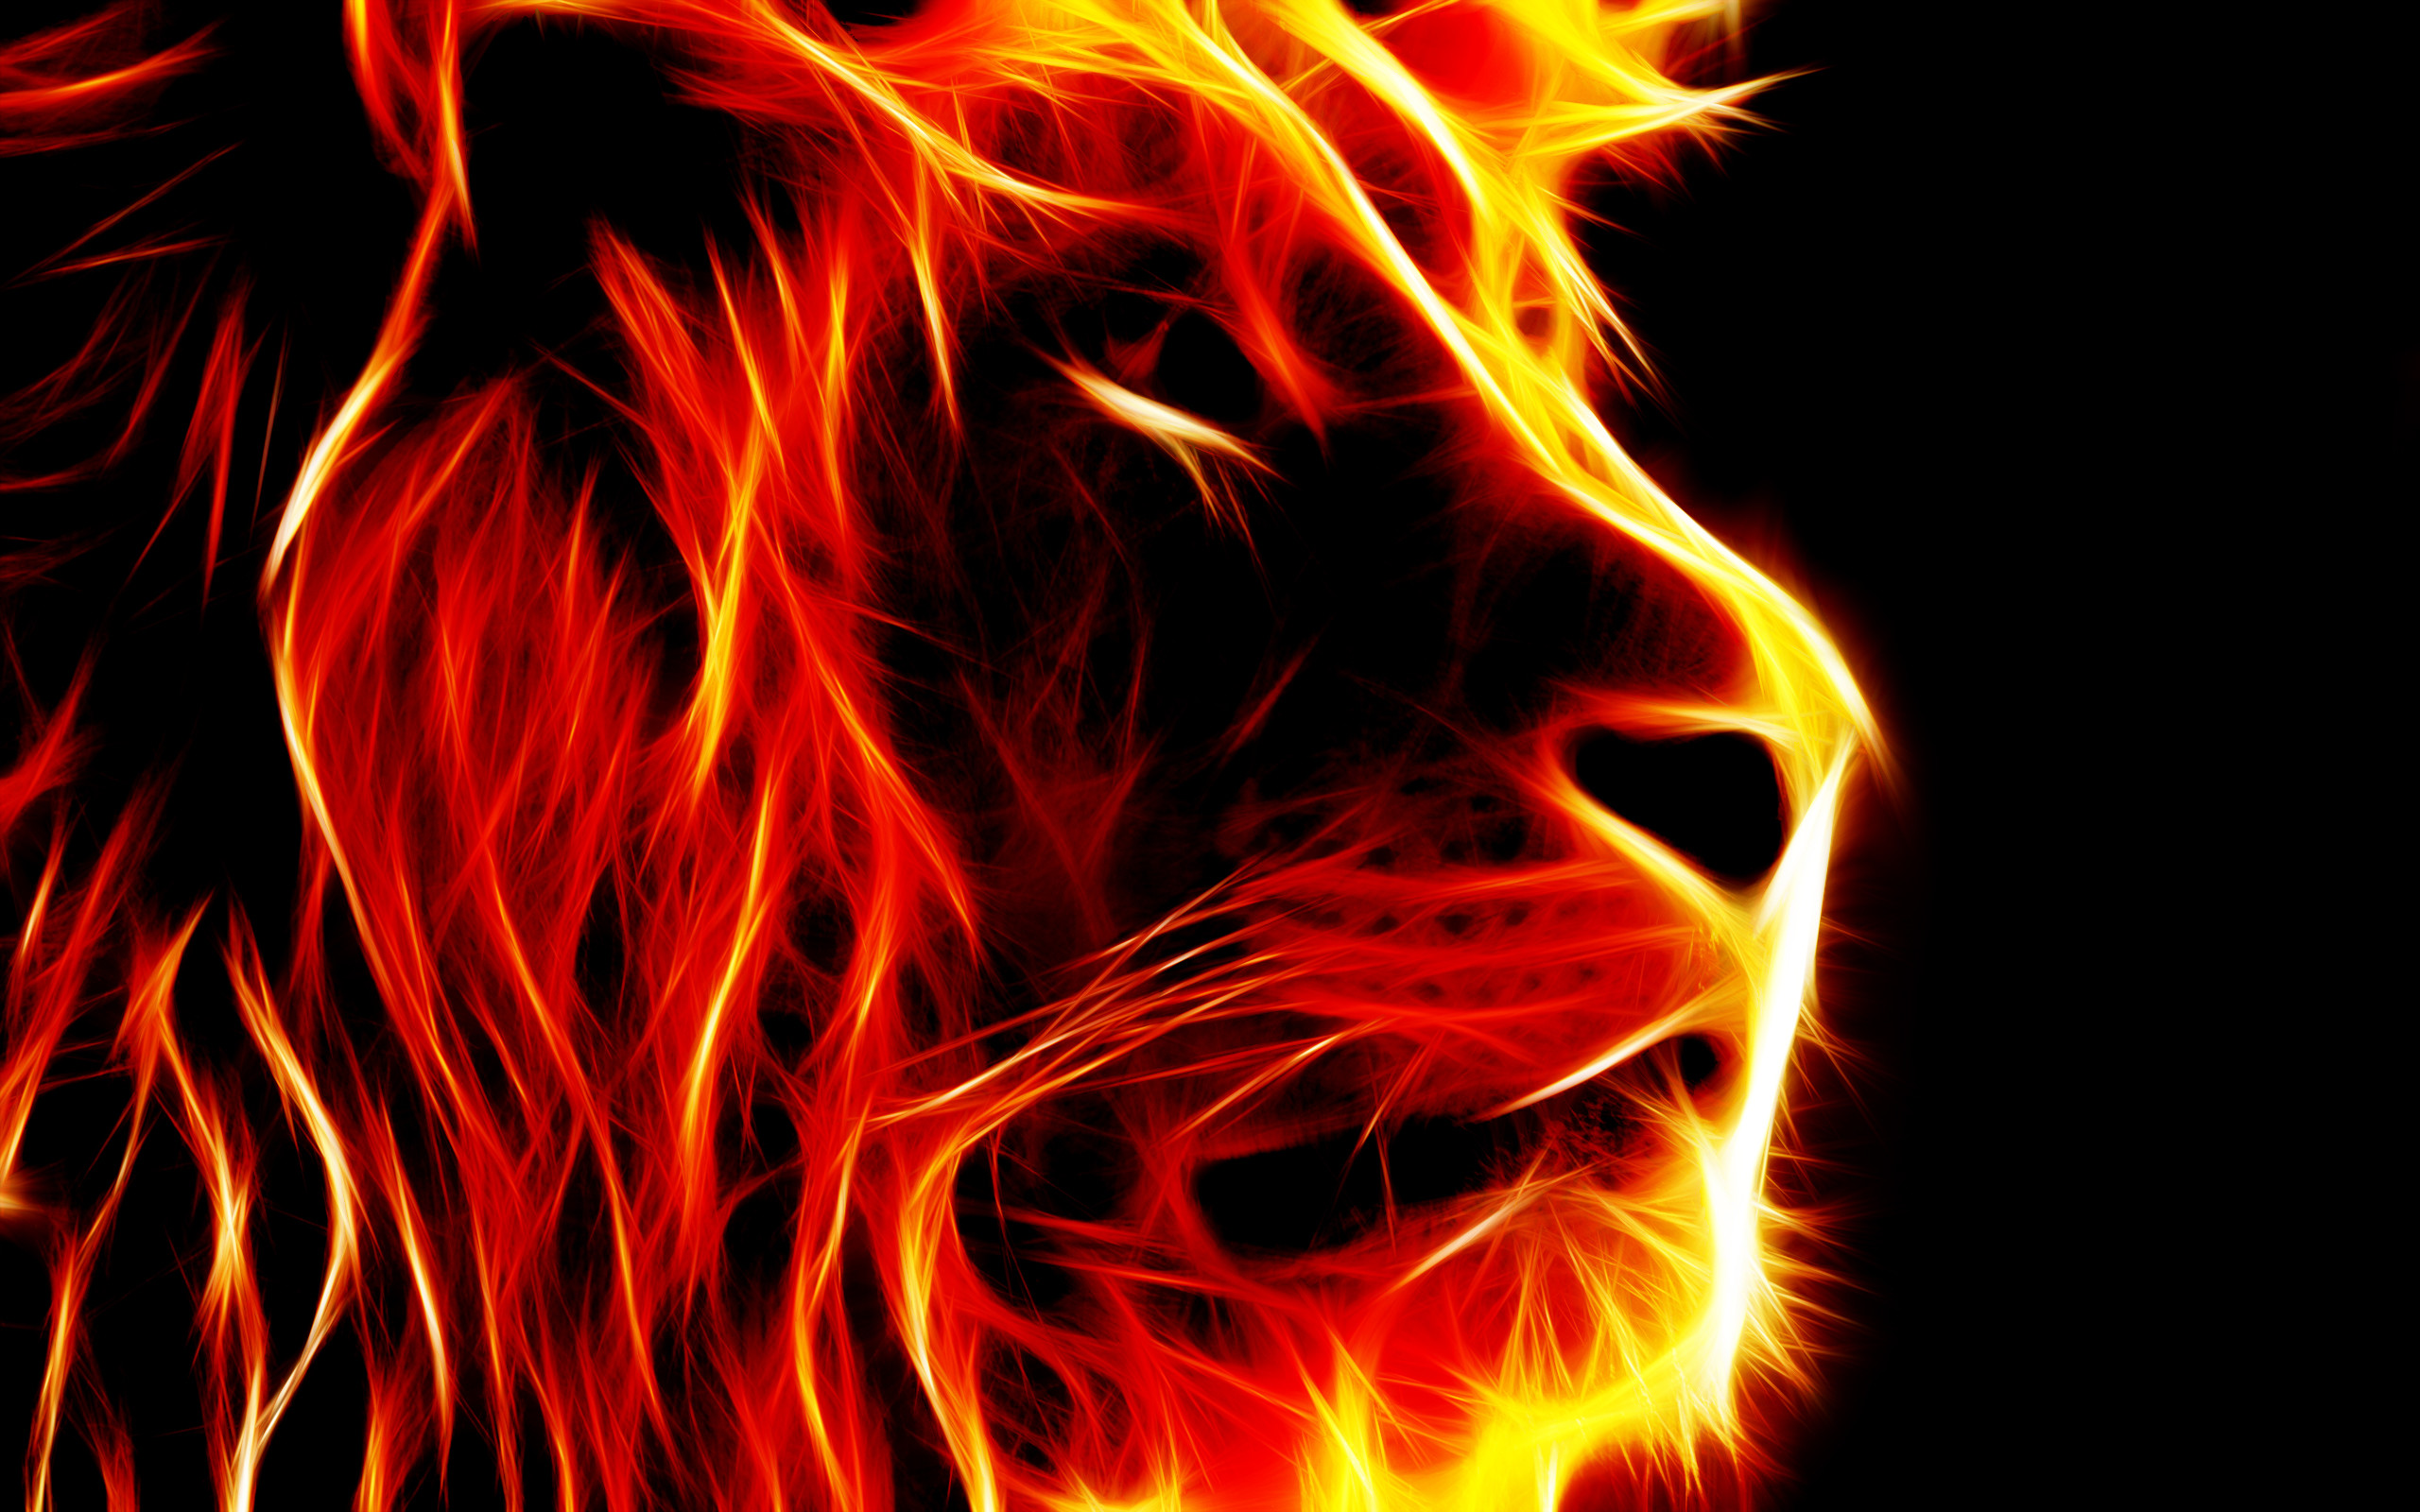 2560x1600 Lion-shaped pictures of fire -free pictures